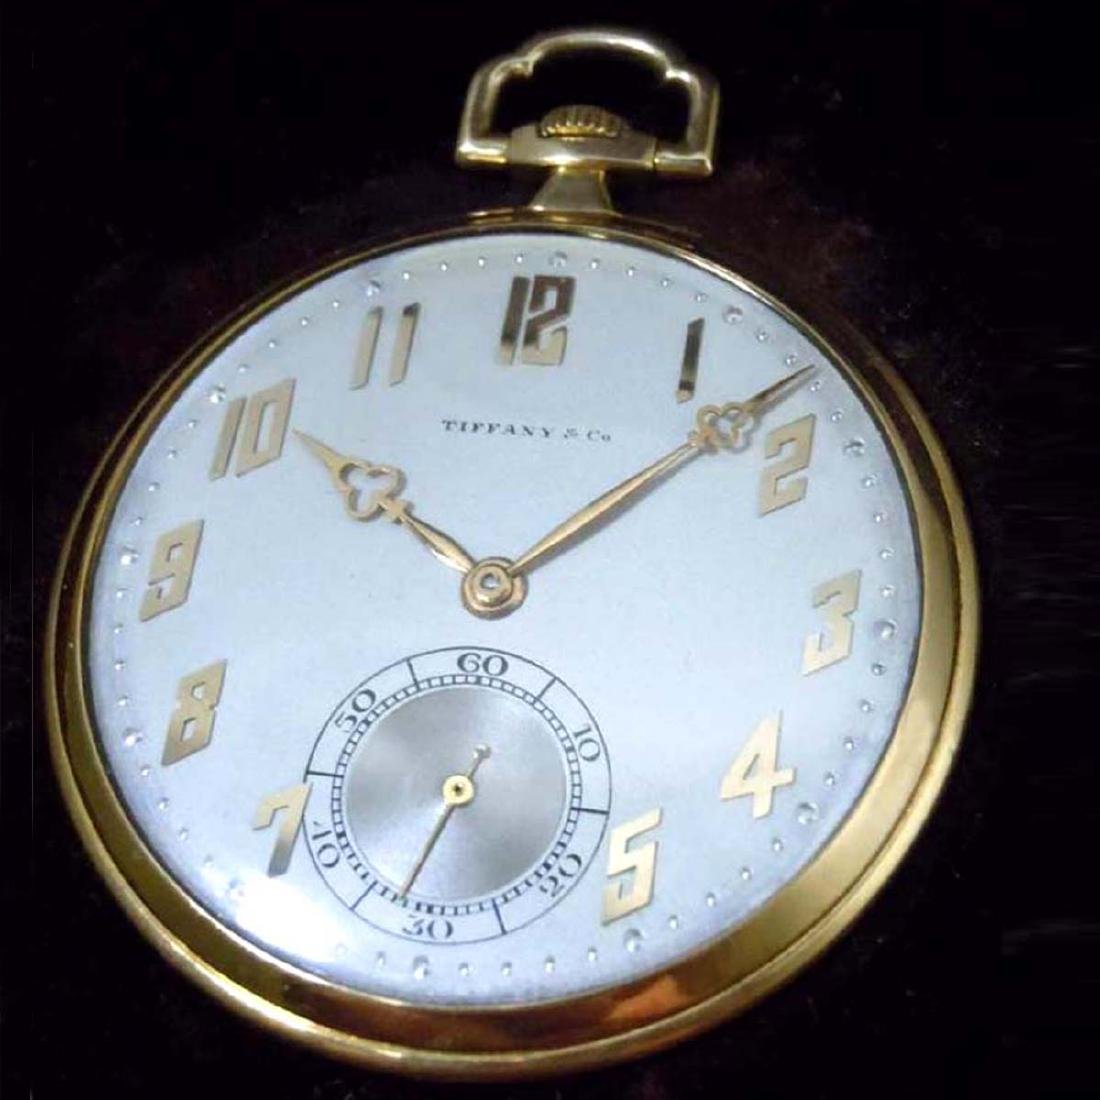 ART DECO 14KT GOLD IWC FOR TIFFANY & Co. POCKET WATCH ;